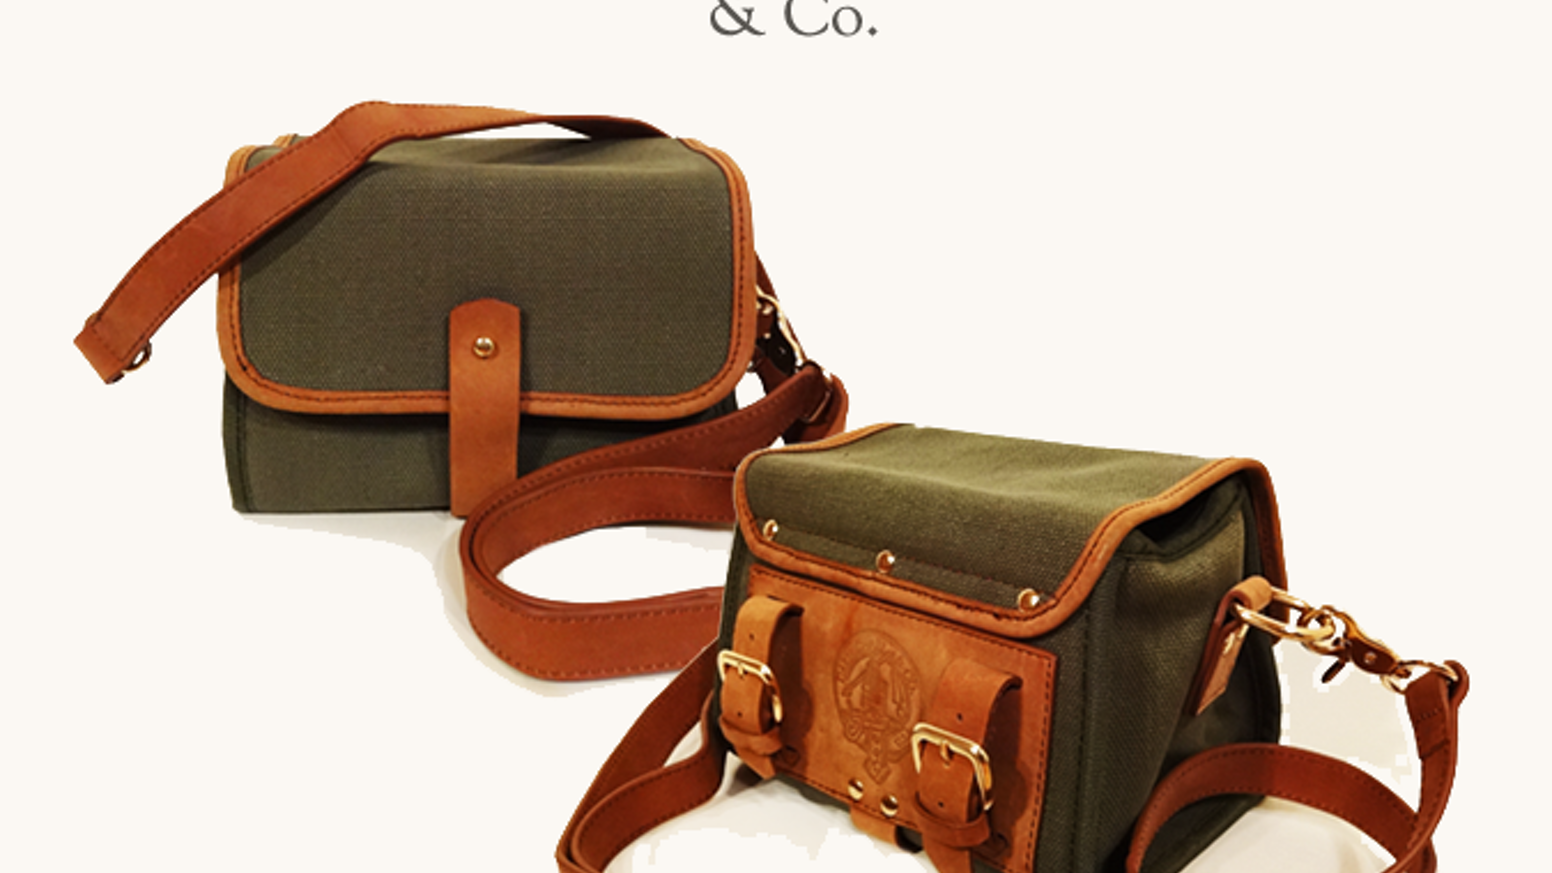 Bike + Wear:  The stylish bicycle handlebar bag that converts to a small messenger bag or purse.